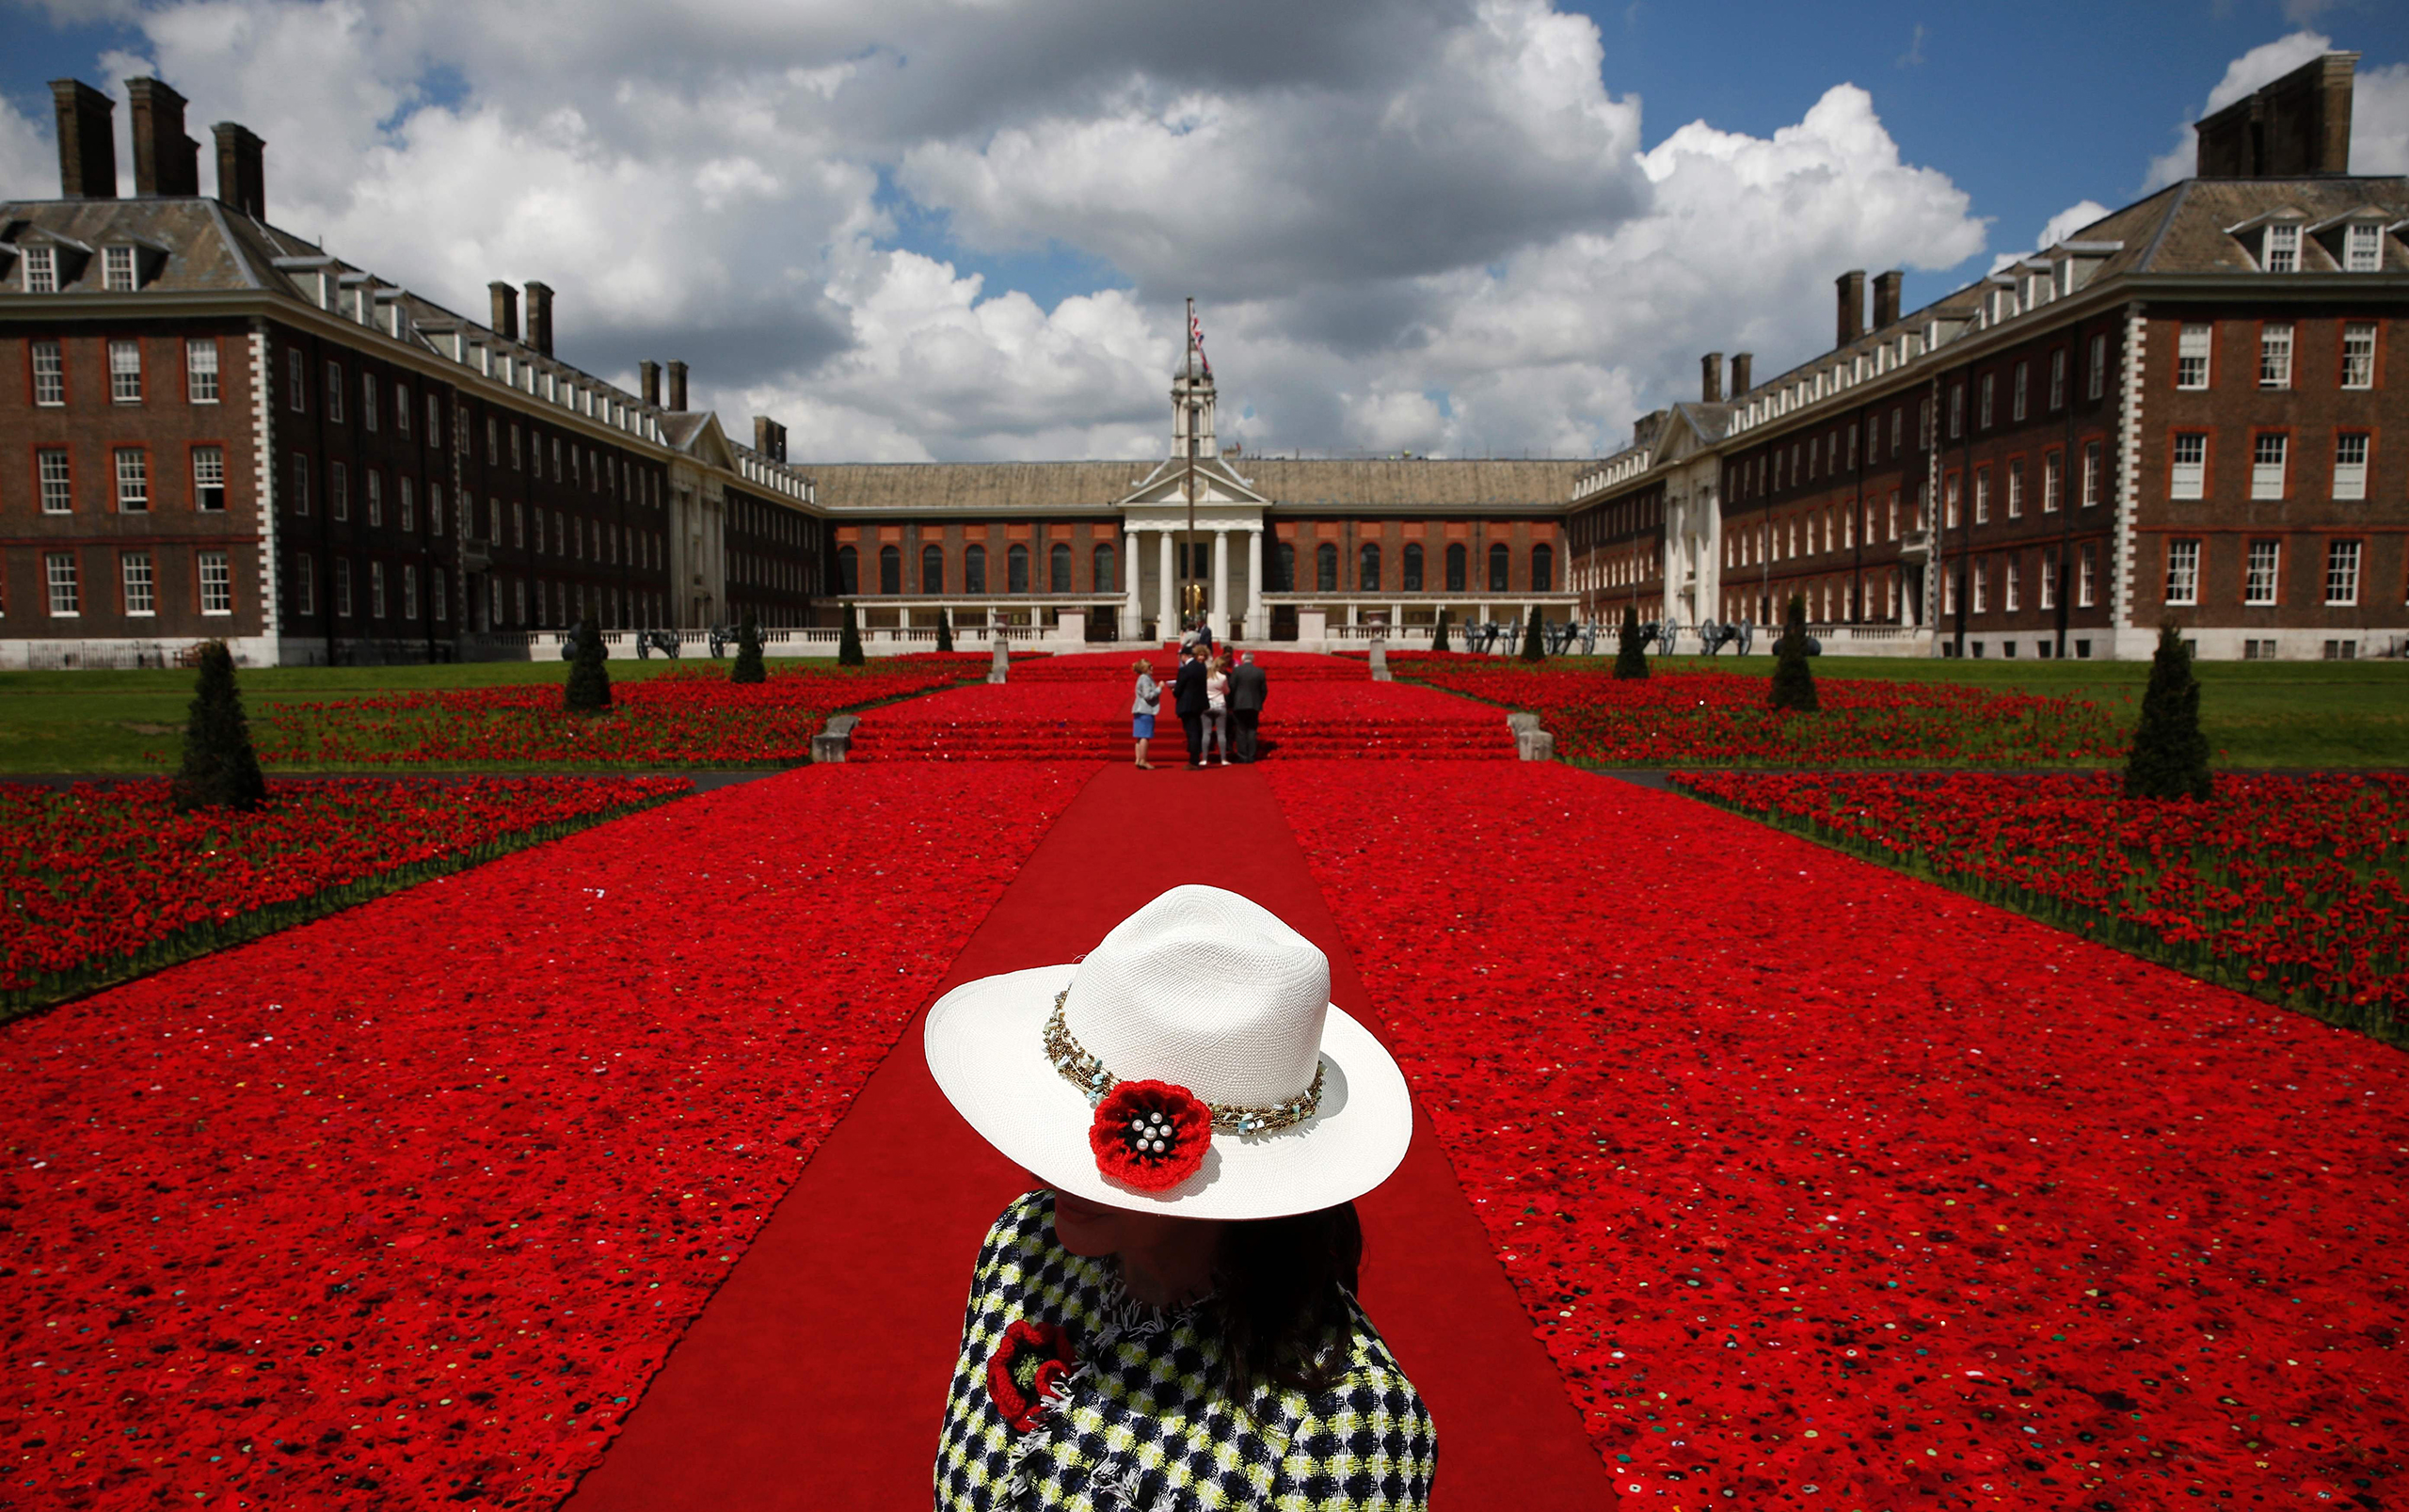 A volunteer stands to the entrance of the 5000 Poppies Garden at the Chelsea Flower Show. Created by Australians Lynn Berry and Margaret Knight, the garden is a tribute to their fathers, who both fought in WWII. London, May 23, 2016.